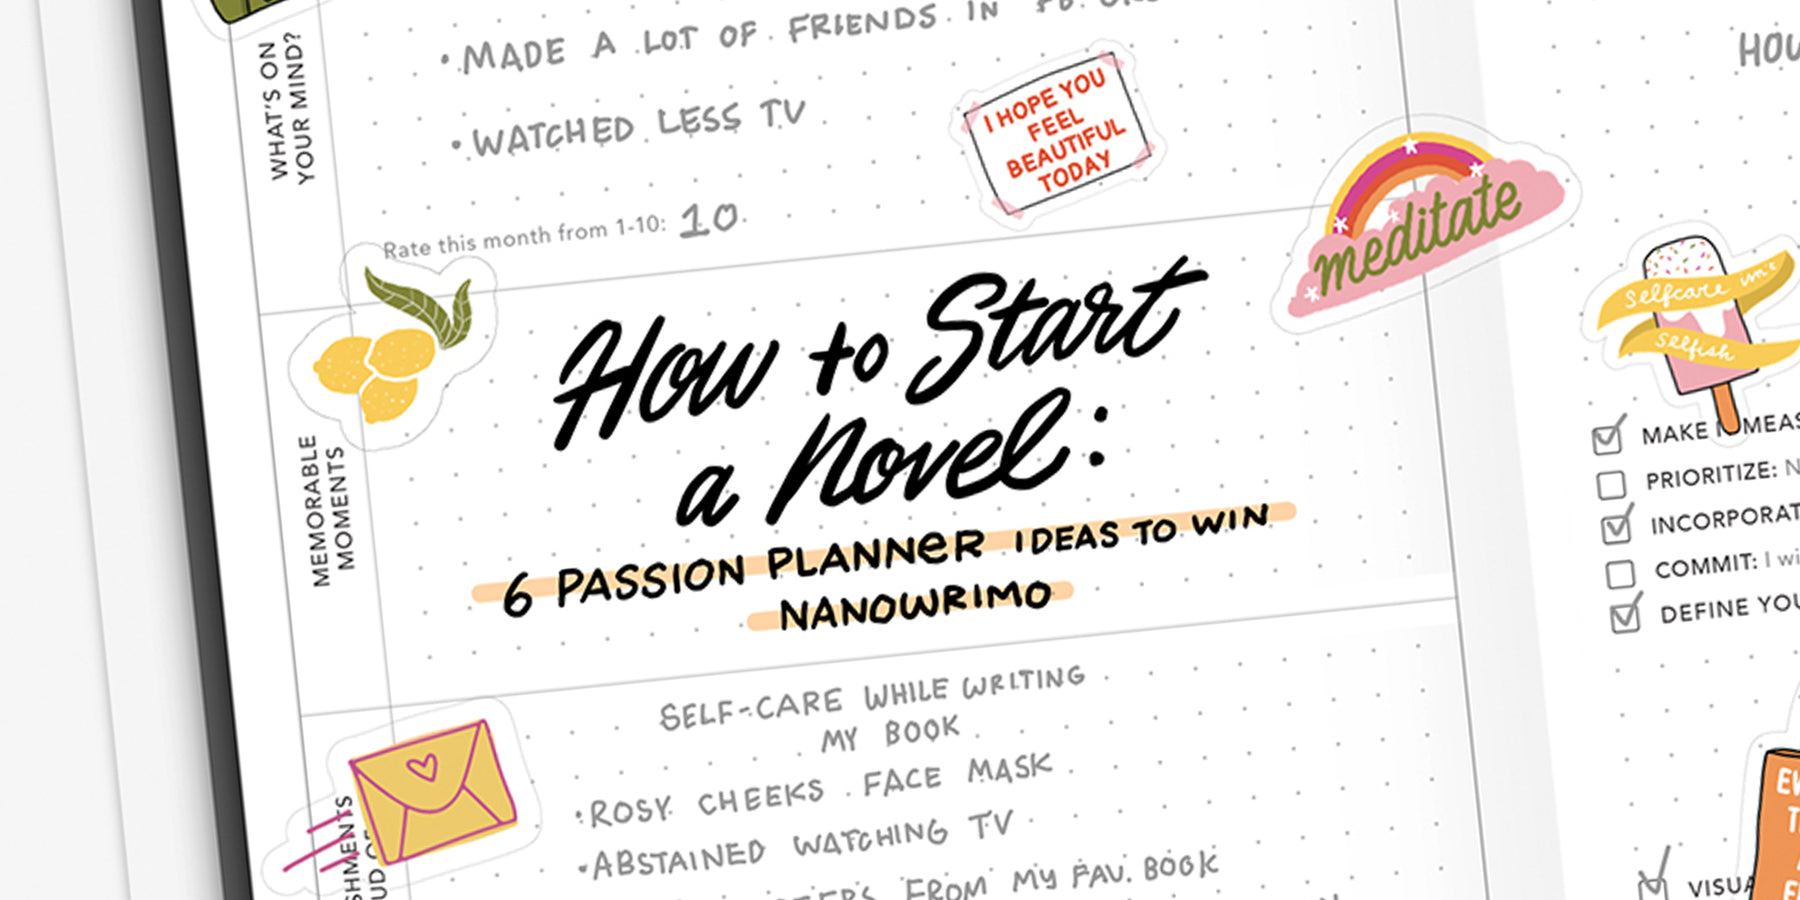 How to Start a Novel: 6 Passion Planner Ideas to Win NaNoWriMo